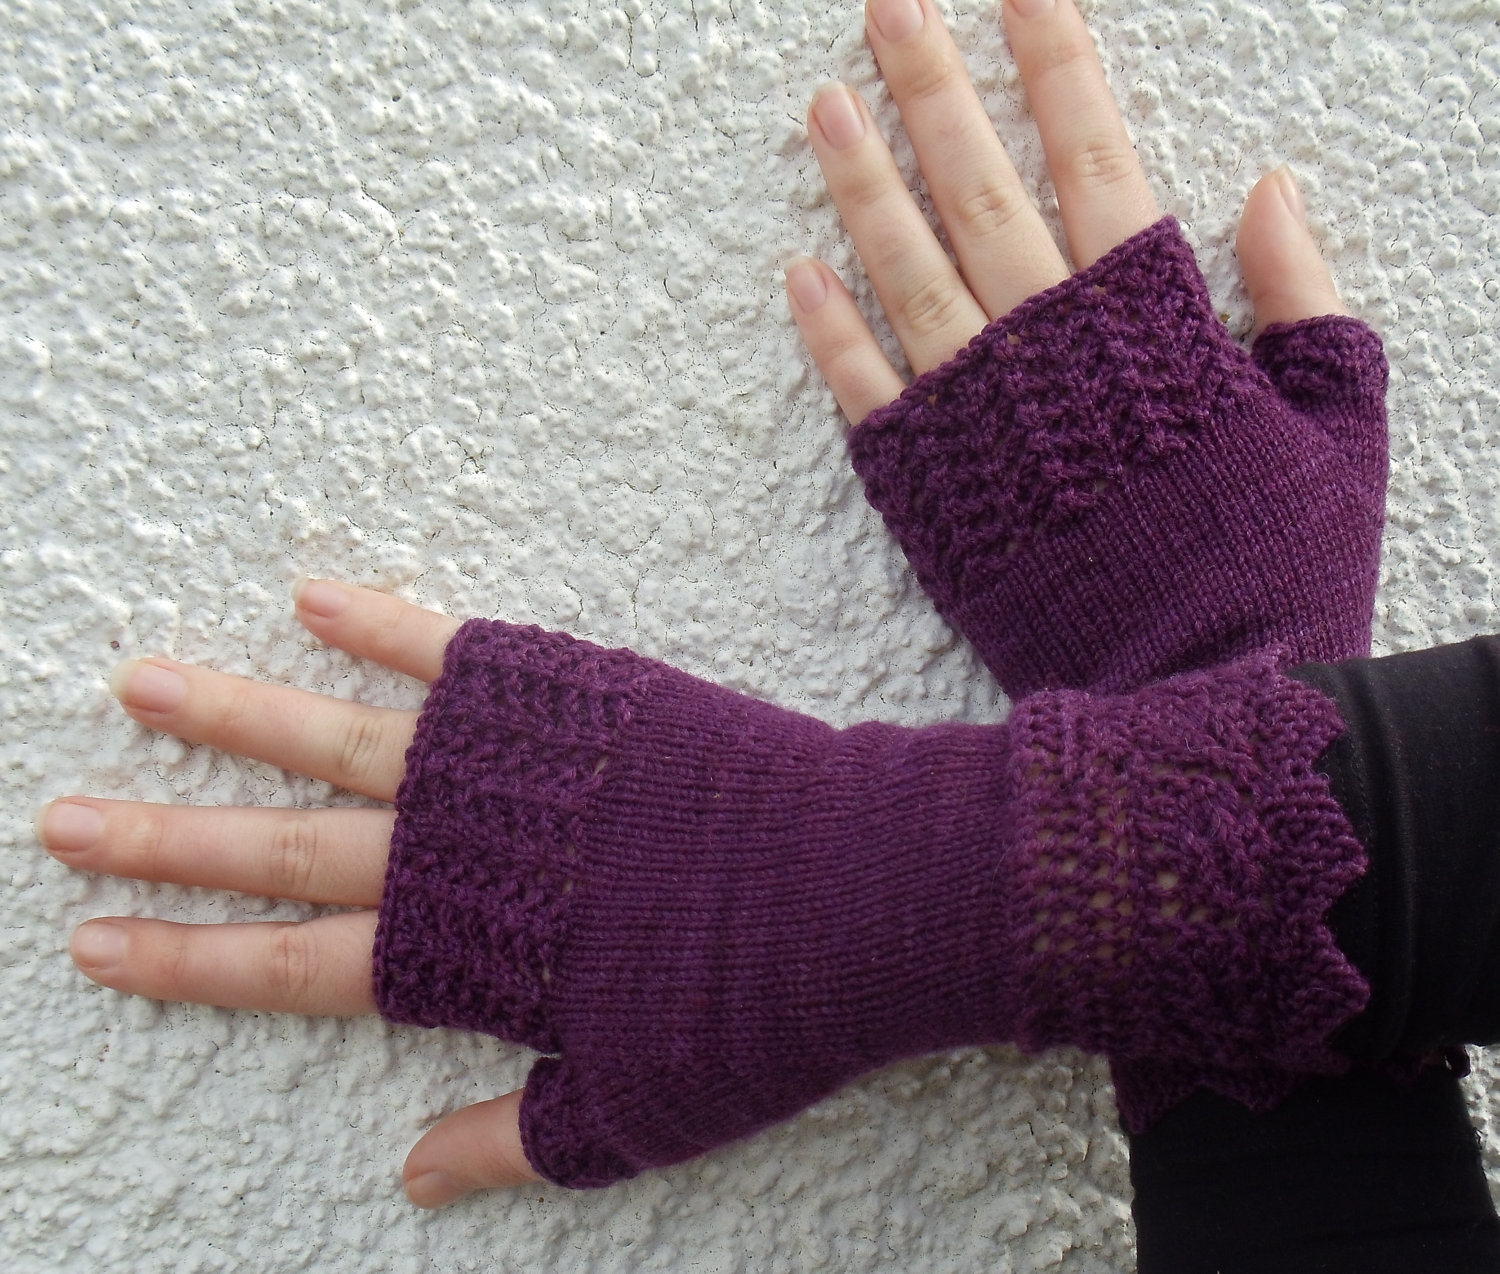 Knit Fingerless Gloves Pattern Free : Fingerless Gloves Knitting Pattern A Knitting Blog